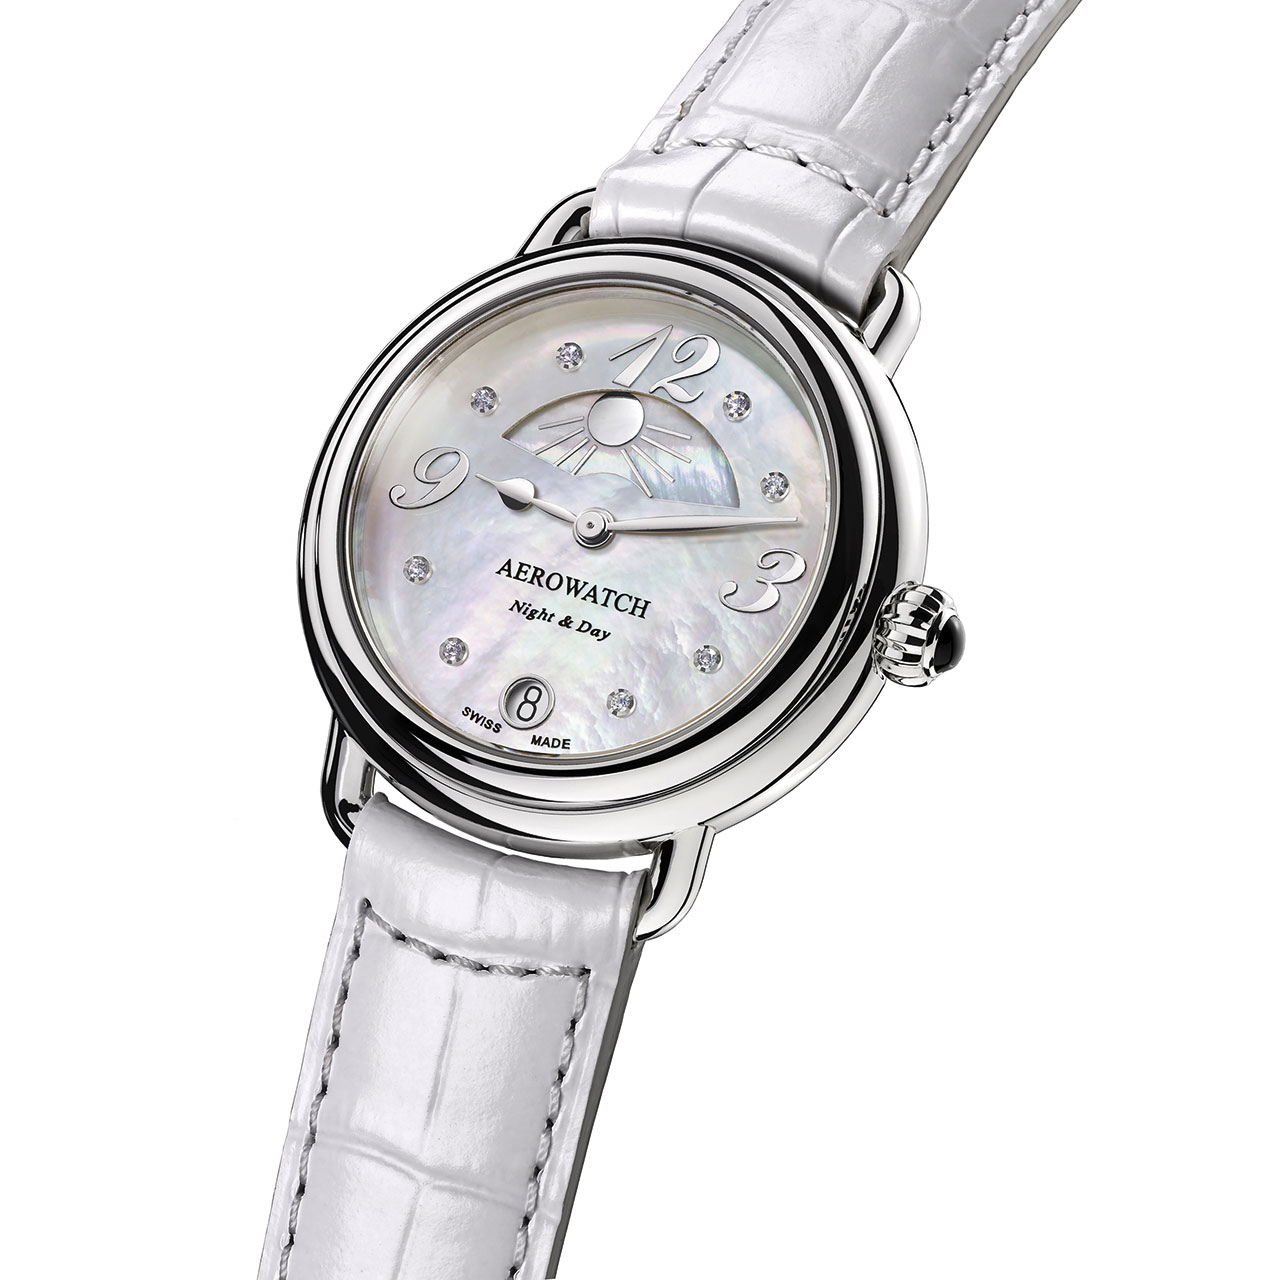 Aerowatch Collection 1942 - Night & Day